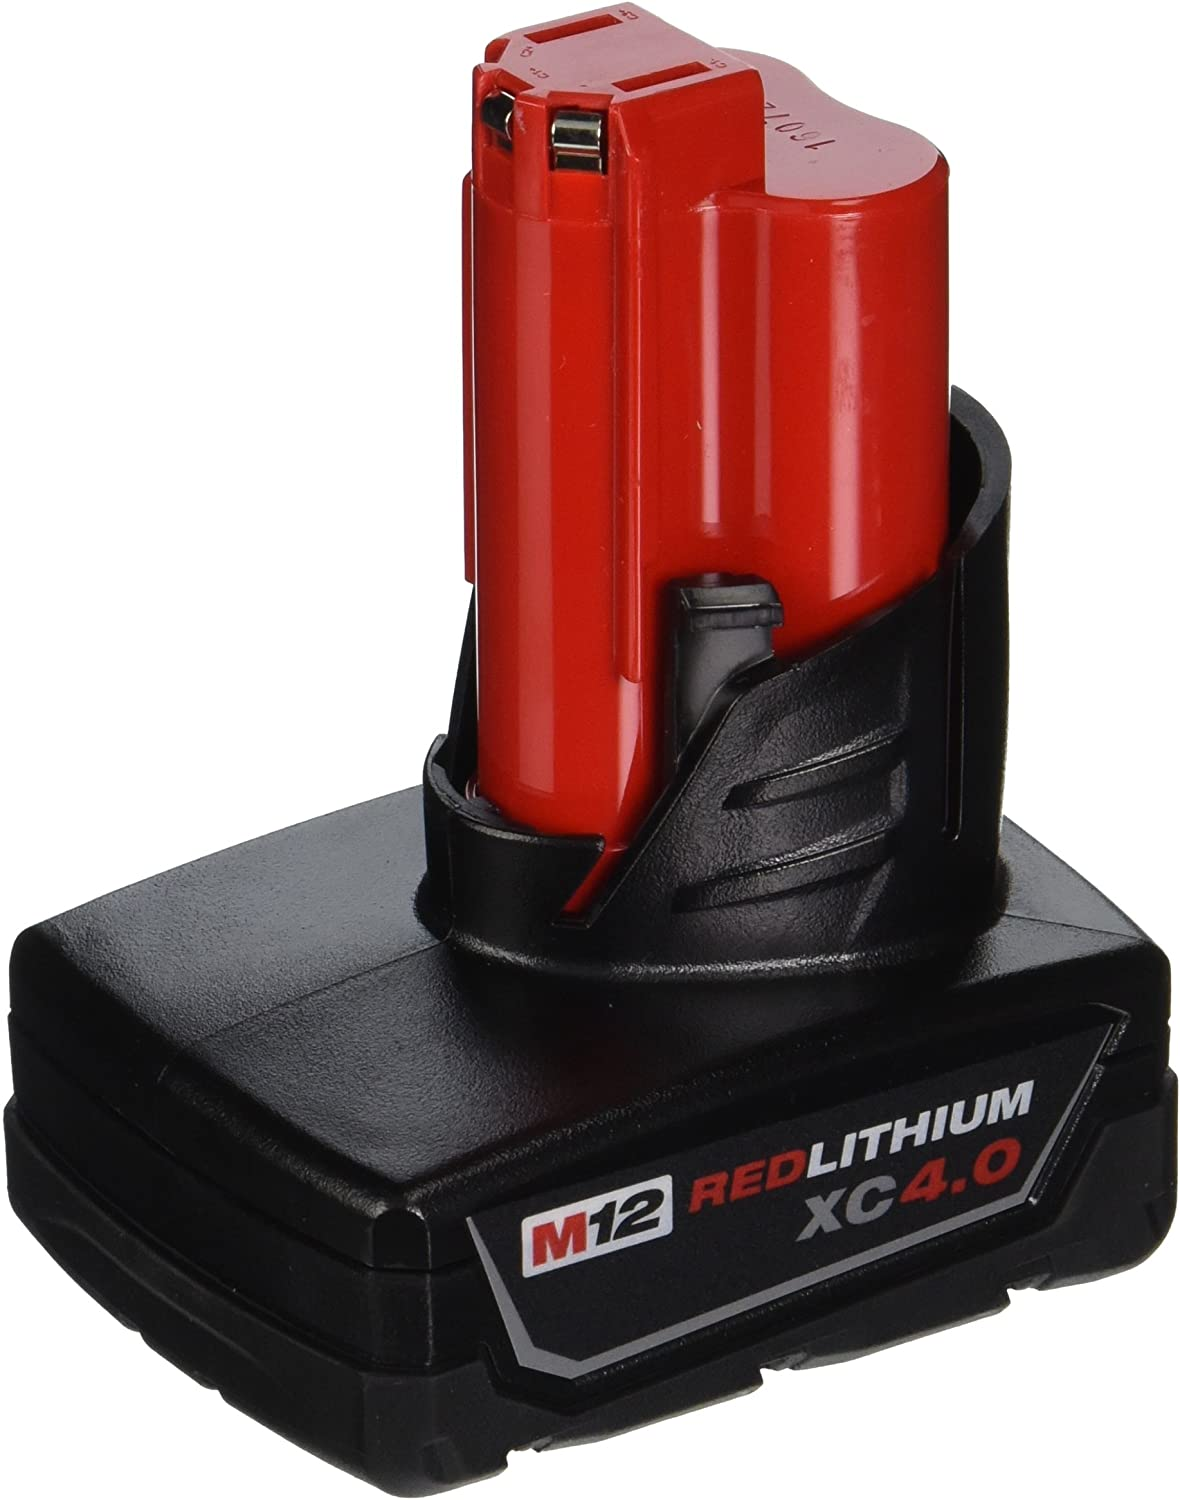 MILWAUKEE'S 48-11-2440 M12 REDLITHIUM XC 4.0 Extended Capacity Battery Pack